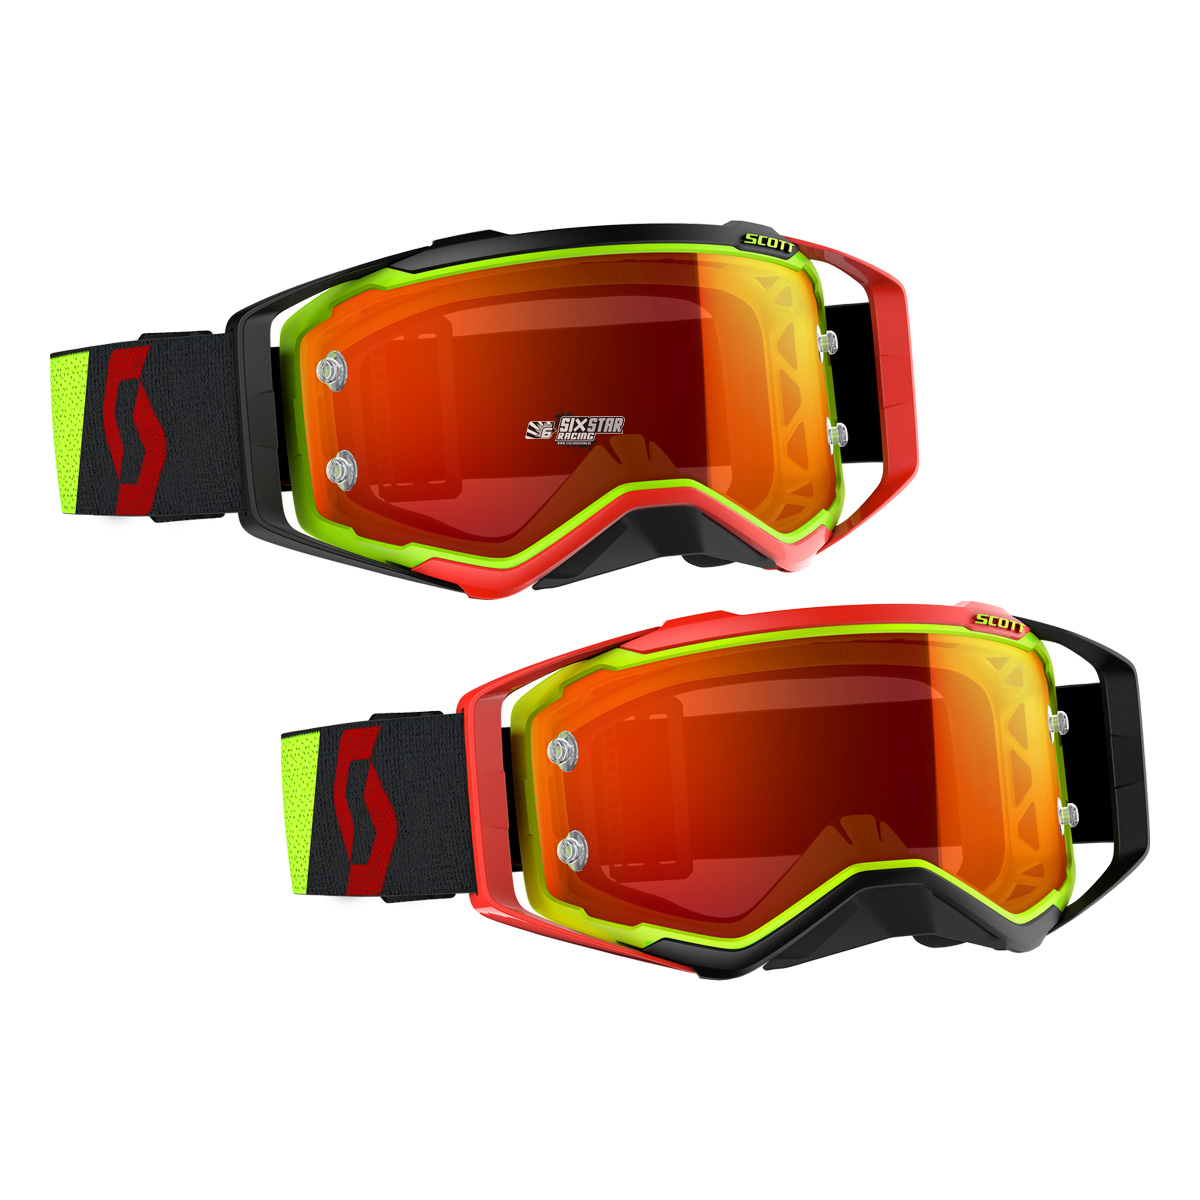 c4ea64e1422 268178-4039280 Scott 2019 Prospect Motocross Enduro bmx downhill Goggle  Yellow Red brille crossbril lunette